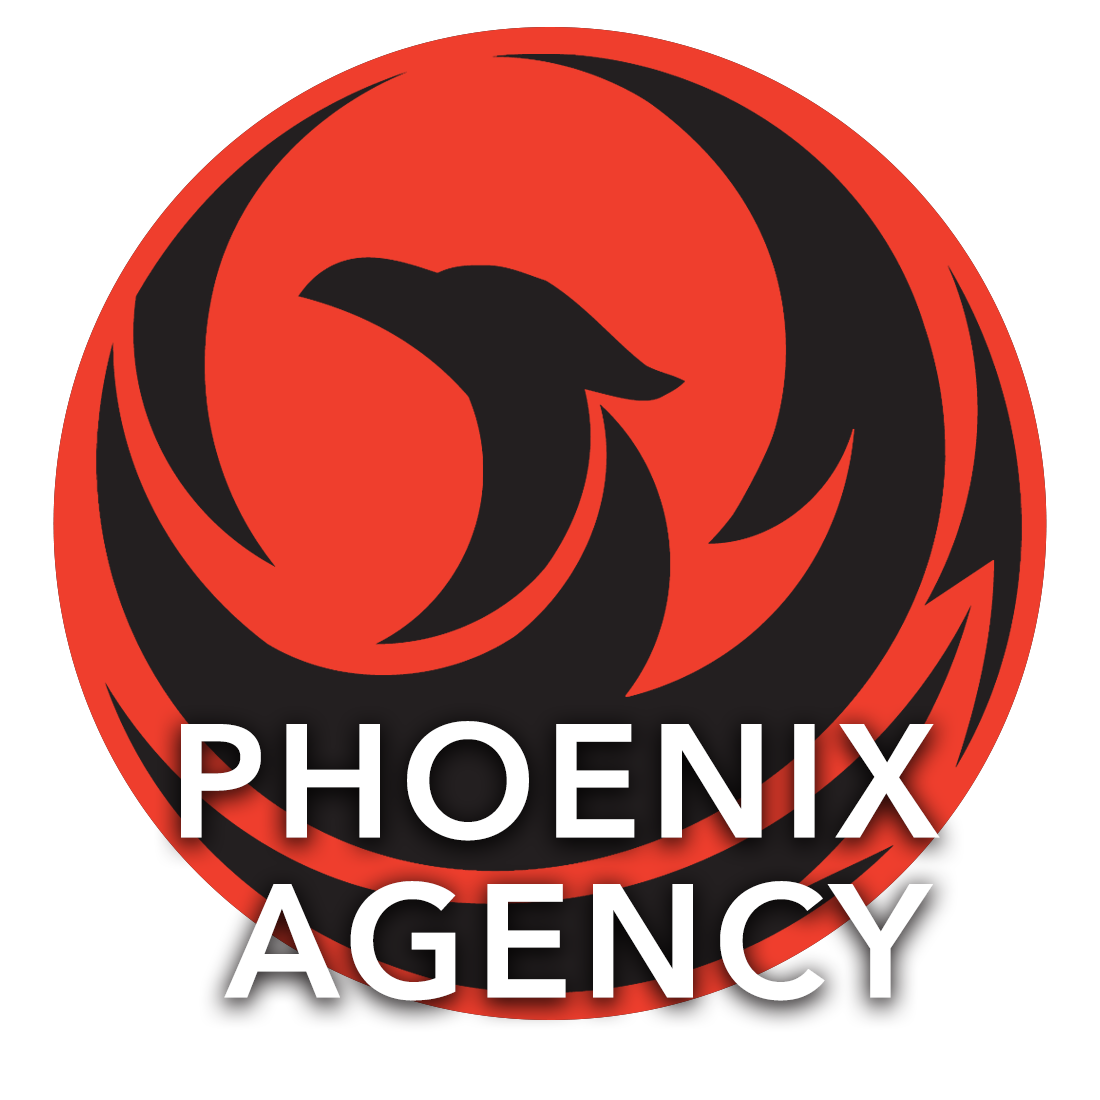 phoenixagency-logo-new.png